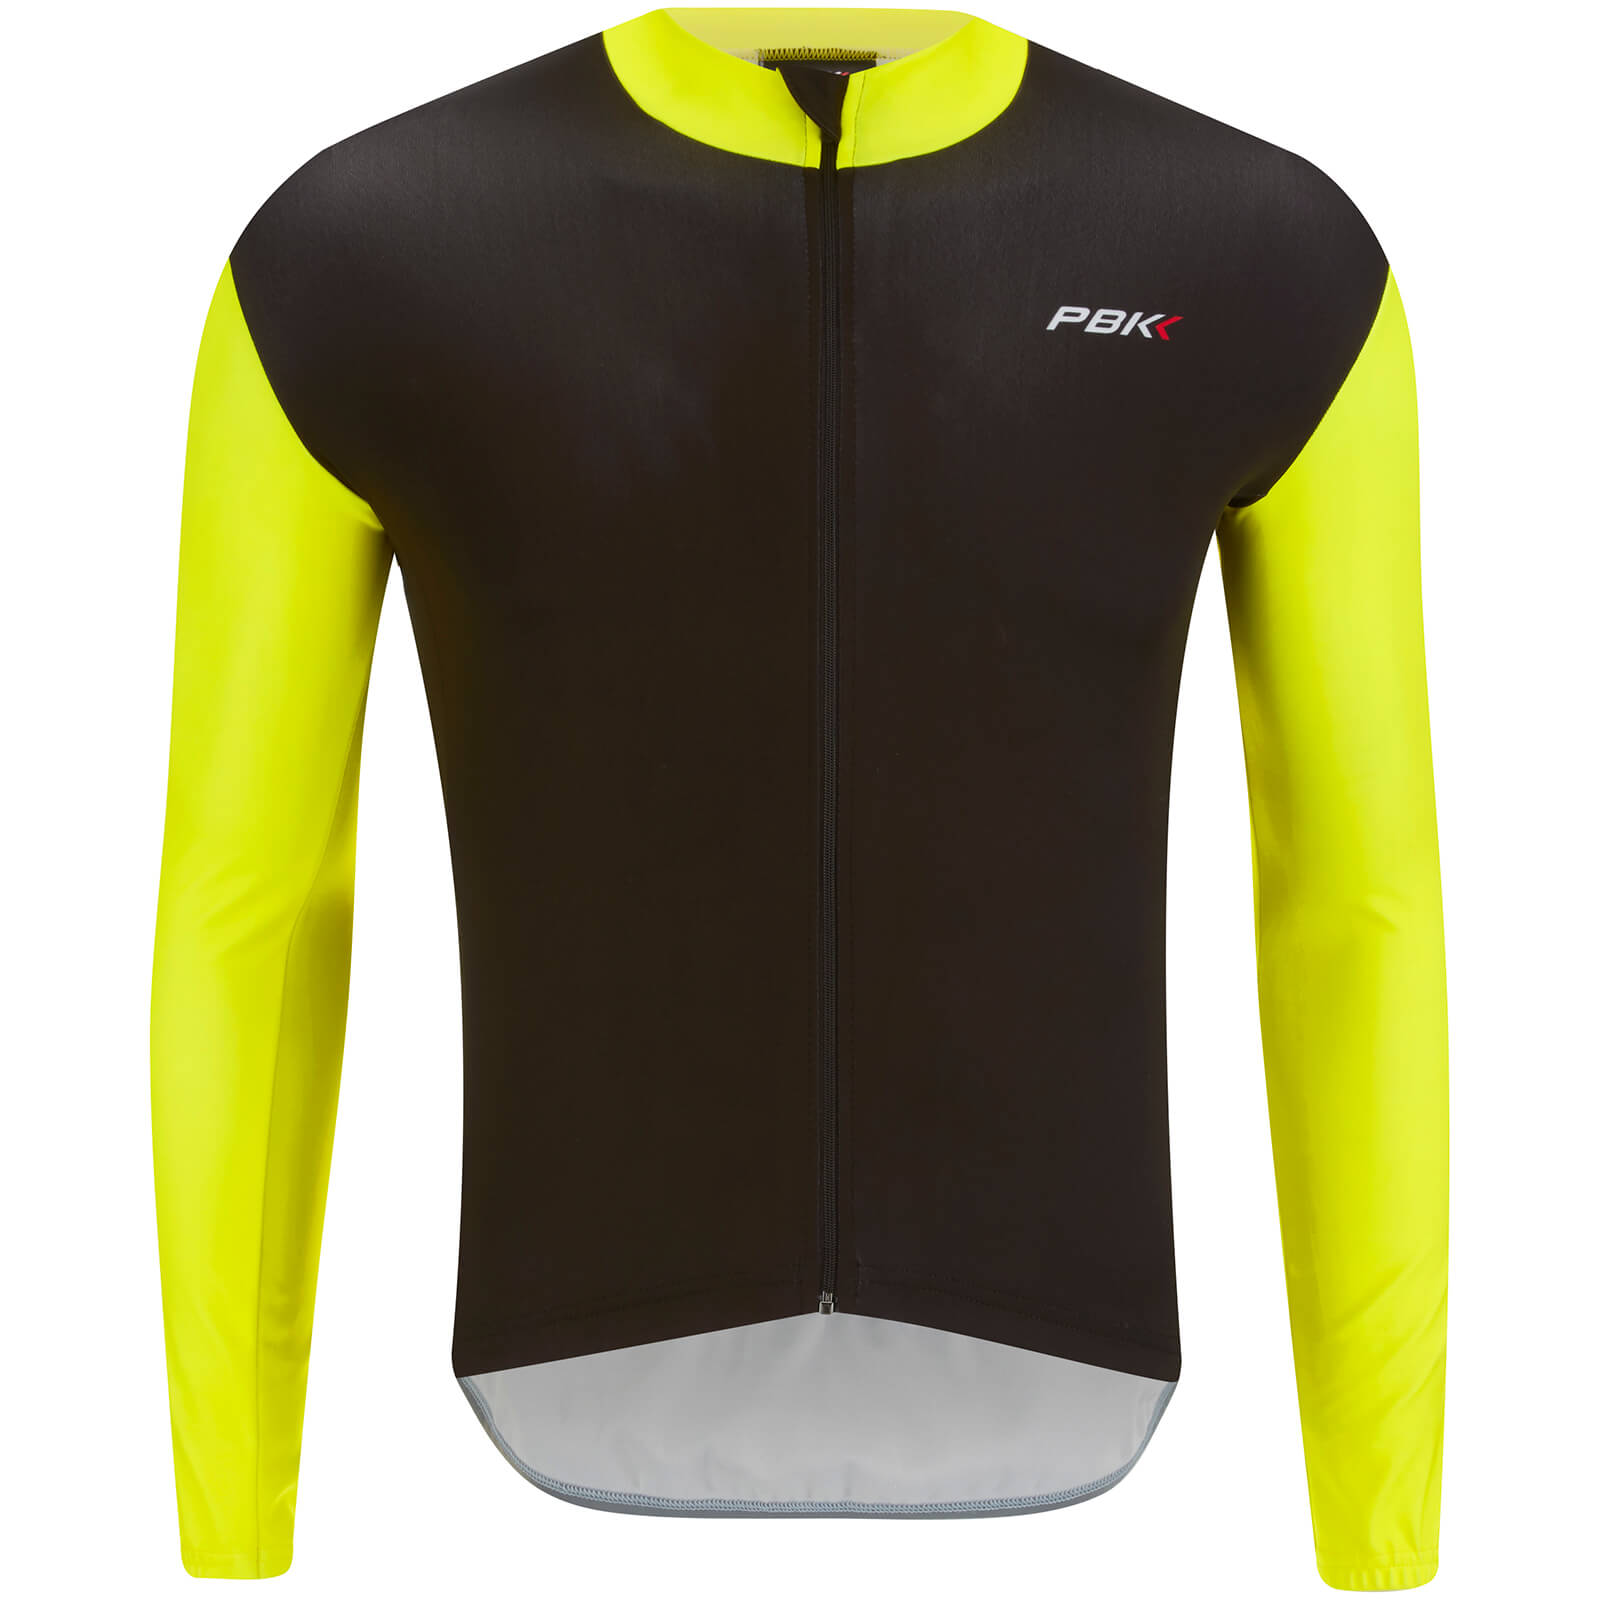 PBK Stelvio Water Repellent Long Sleeve Jersey - Fluro